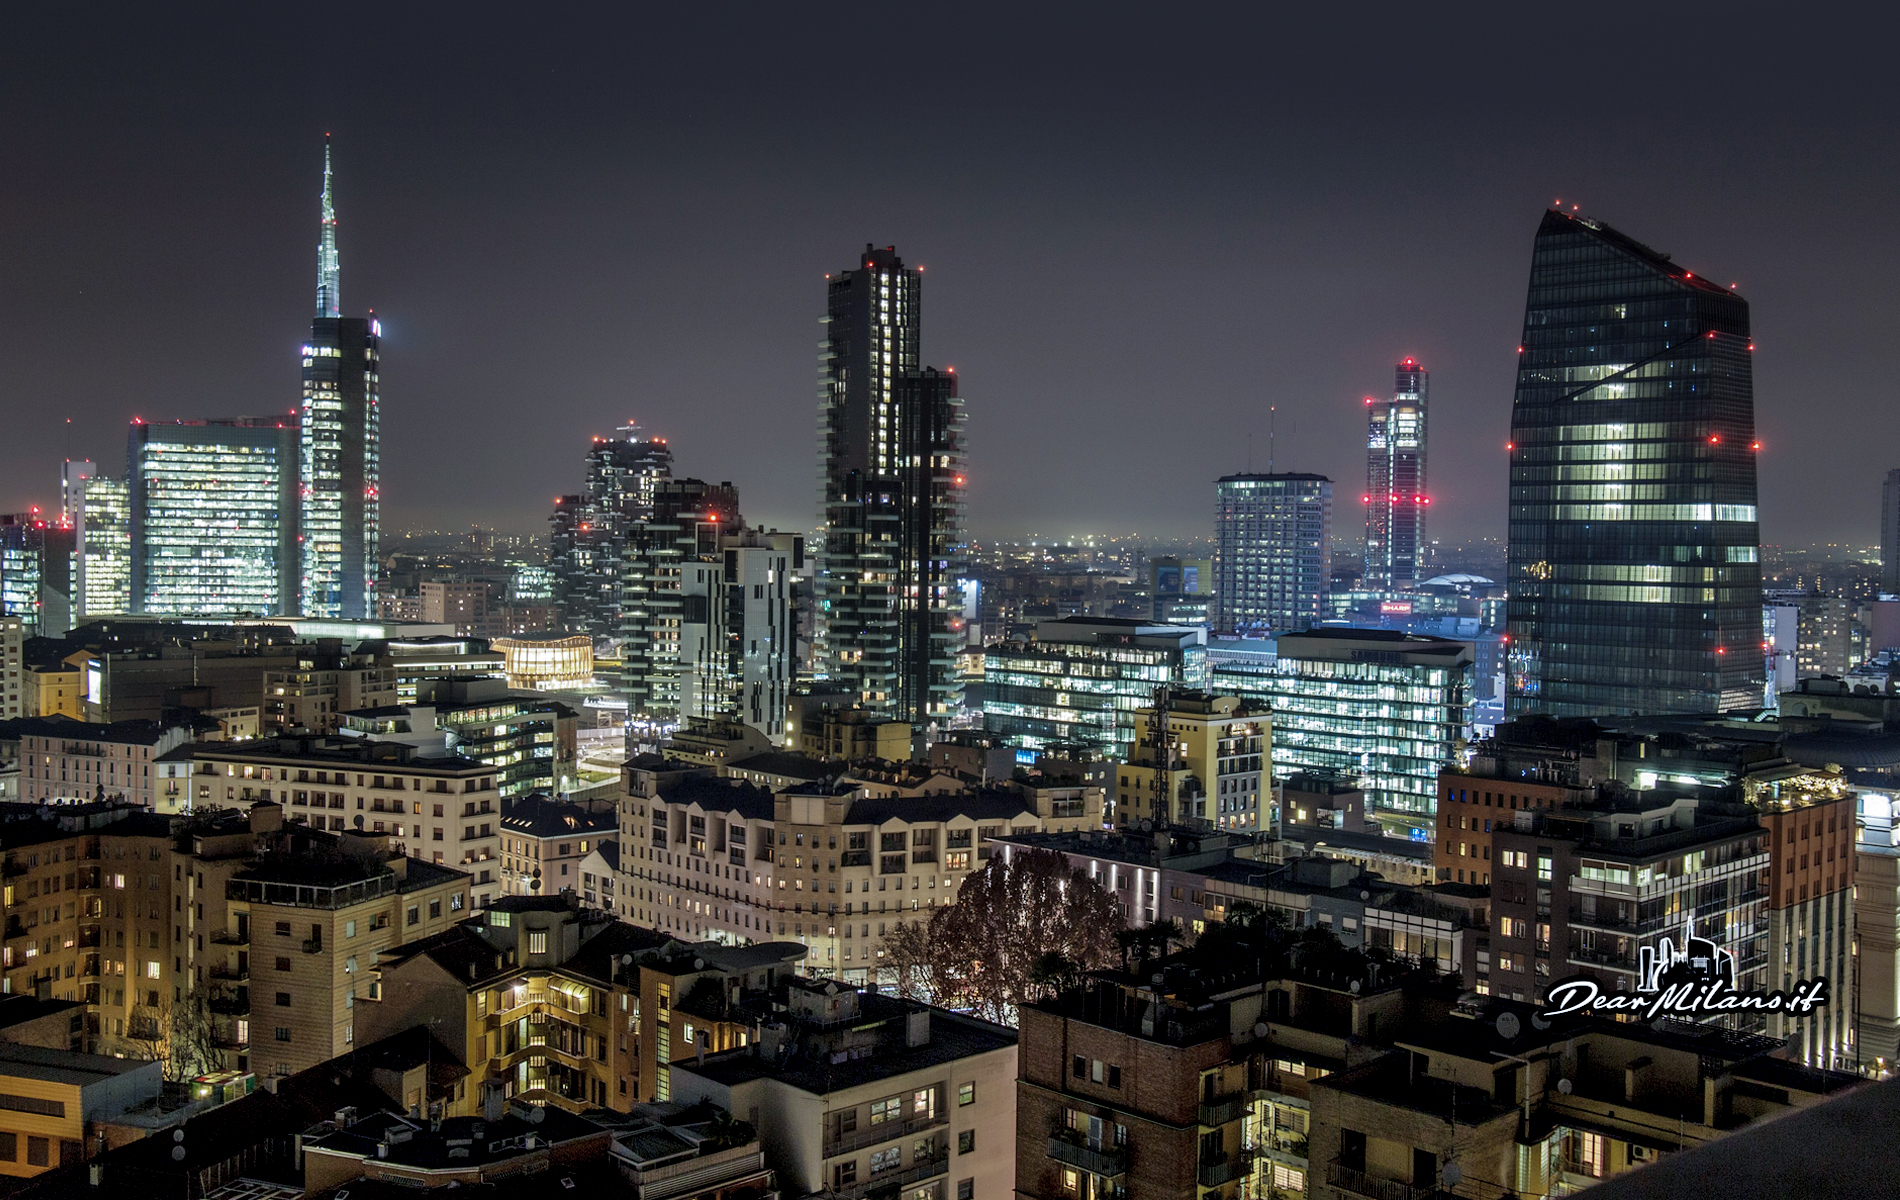 Milano by night, skyline